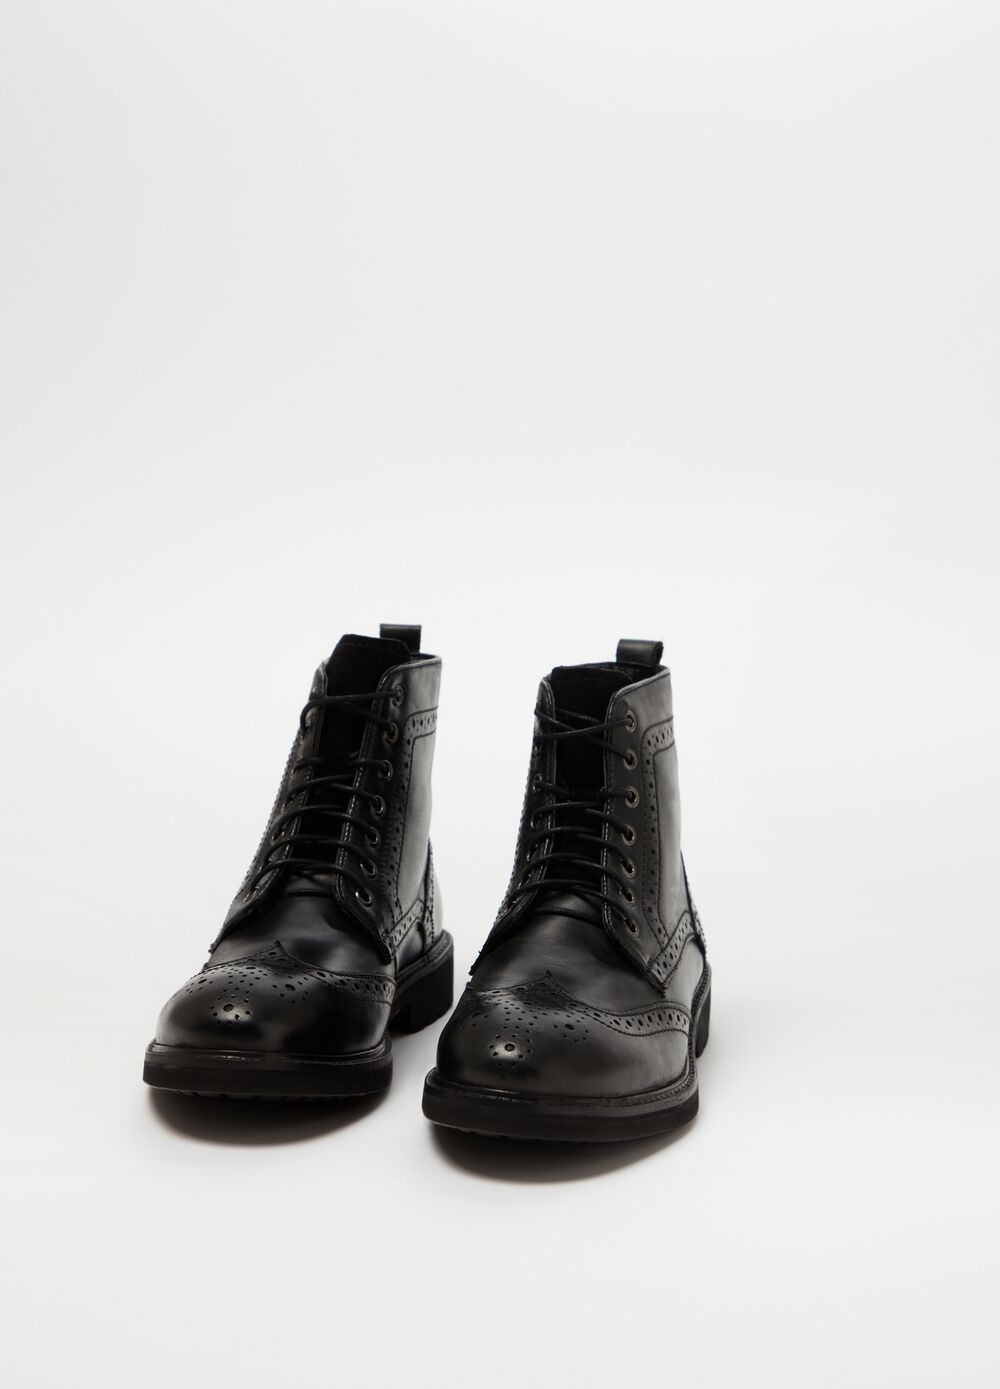 Rumford genuine leather boots